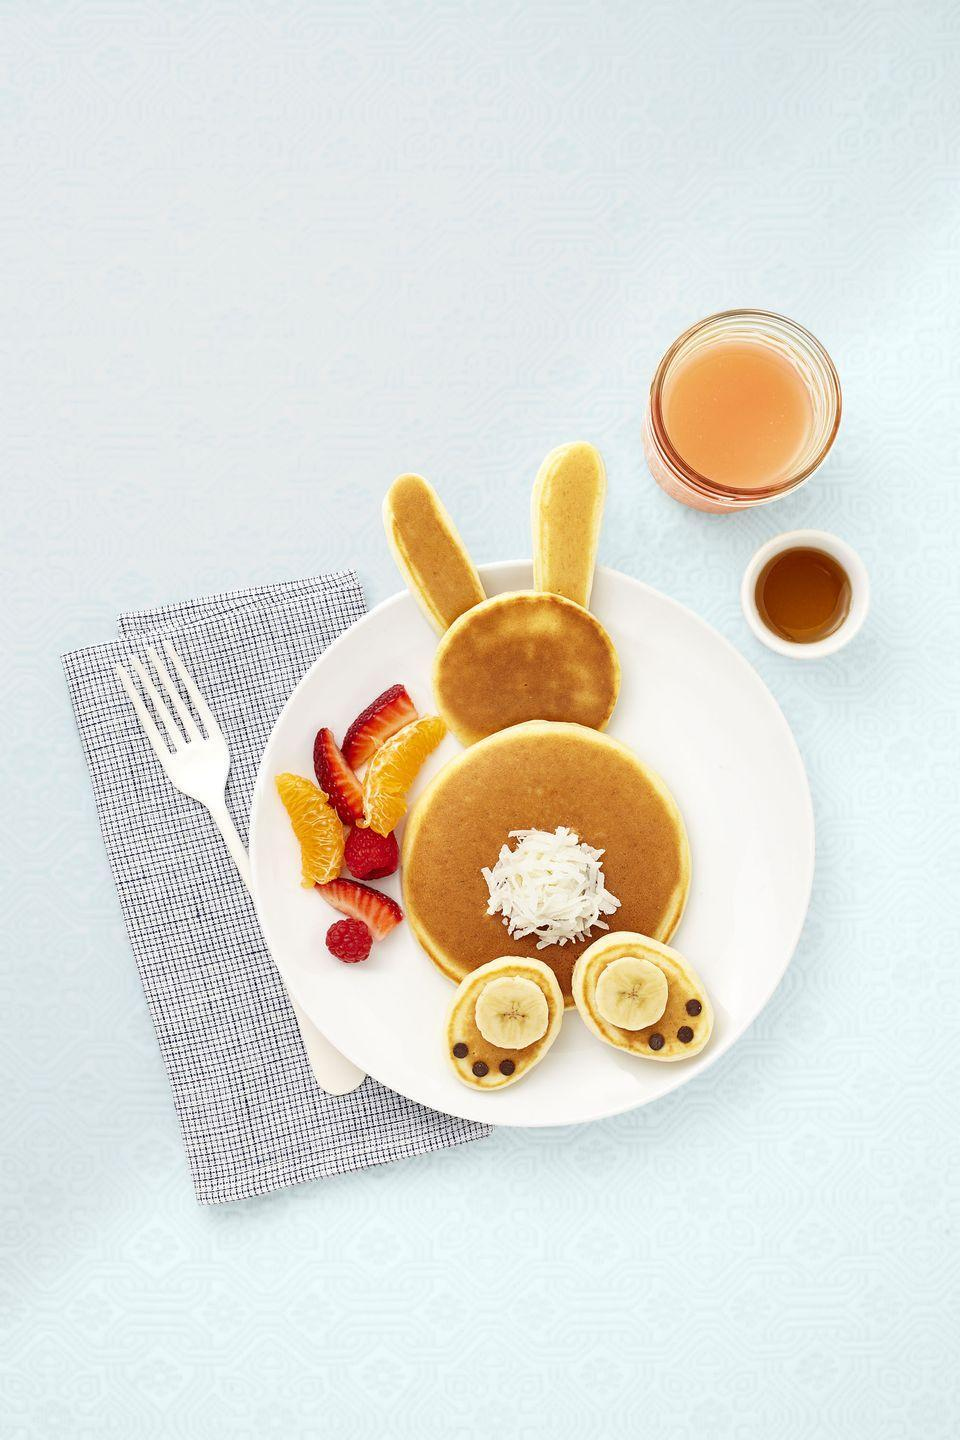 """<p>Eggs, bananas, and self-rising flour make for delicious pancake batter. You'll earn extra points with the little ones for having fun with this fruit-infused breakfast.</p><p><em><em><a href=""""https://www.goodhousekeeping.com/food-recipes/a1515/3-ingredient-banana-pancakes-recipe-ghk0415/"""" rel=""""nofollow noopener"""" target=""""_blank"""" data-ylk=""""slk:Get the 3-Ingredient Banana Pancakes recipe »"""" class=""""link rapid-noclick-resp"""">Get the 3-Ingredient Banana Pancakes recipe »</a></em></em></p>"""